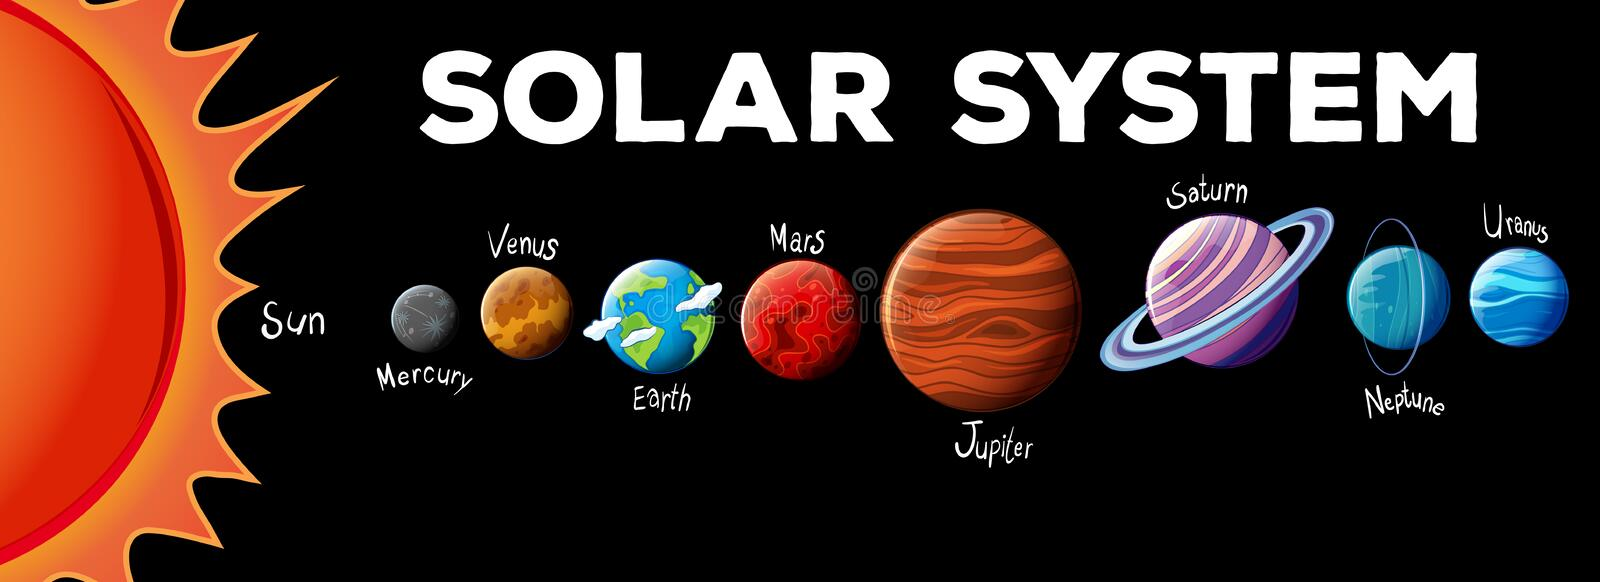 sol- system för planet stock illustrationer